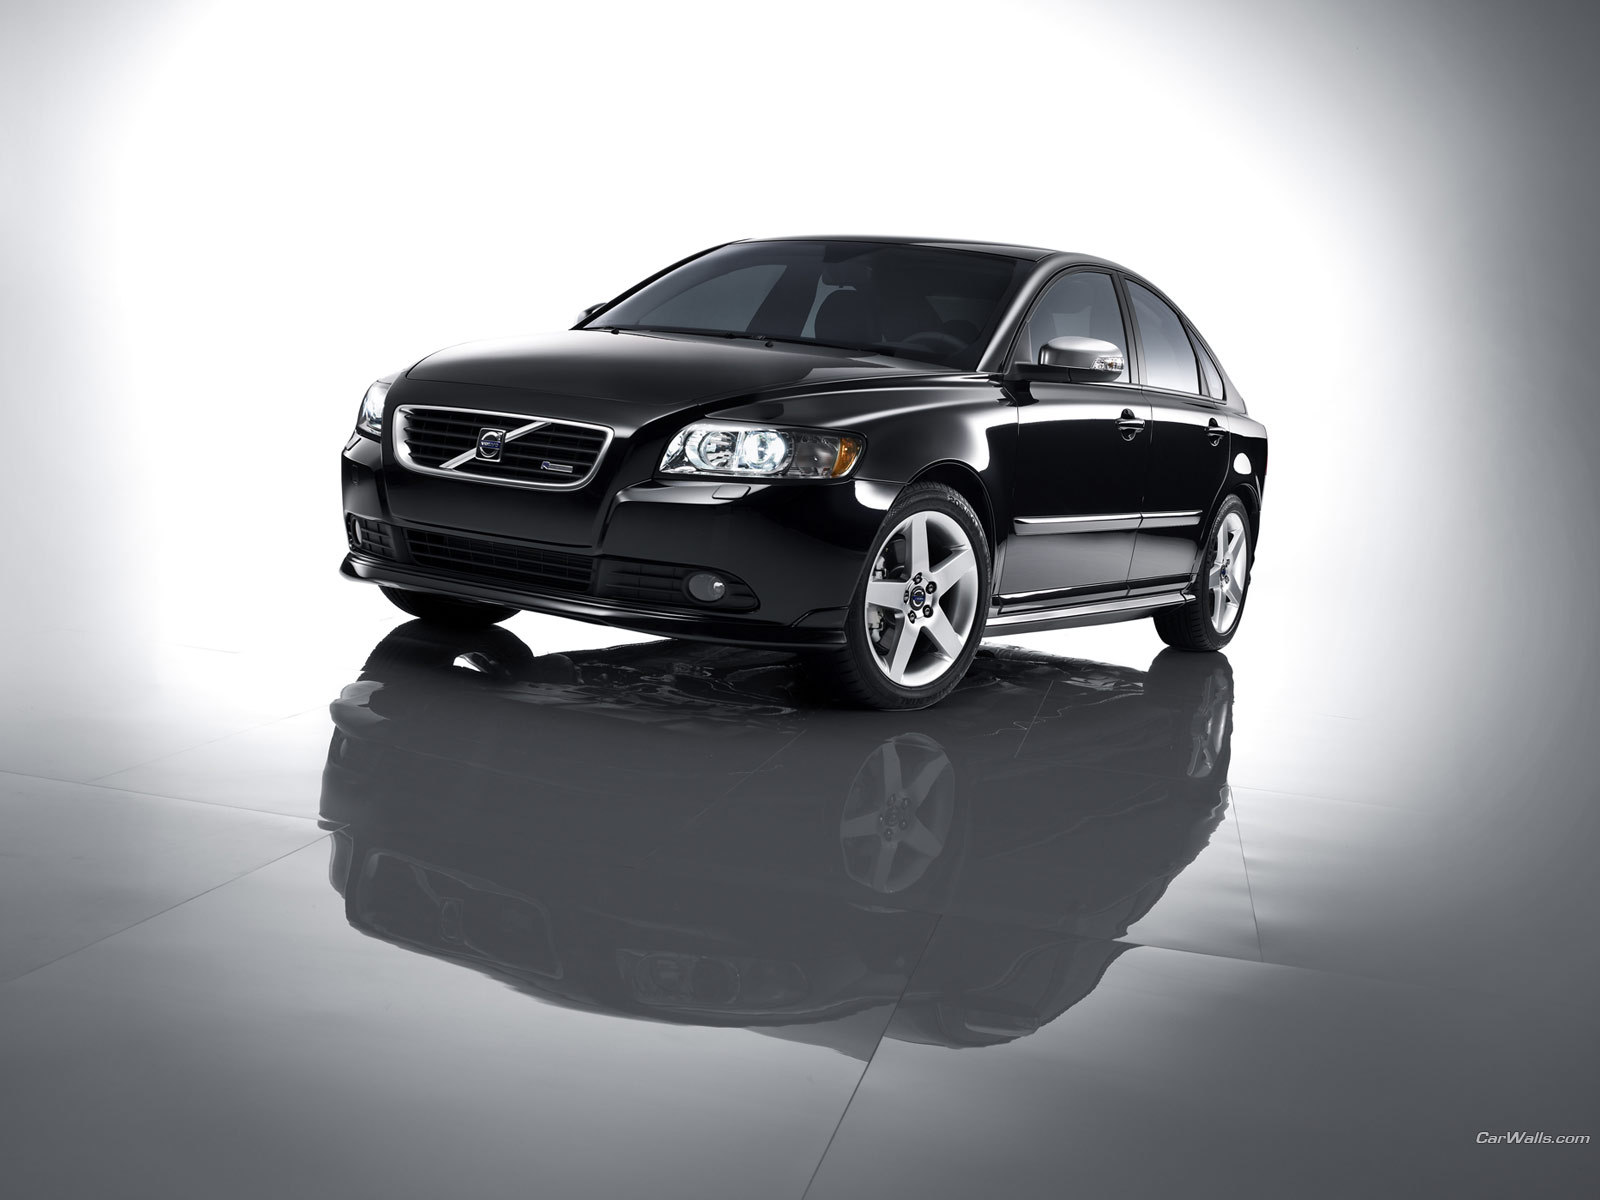 Volvo images S40 R design HD wallpaper and background photos 888230 1600x1200